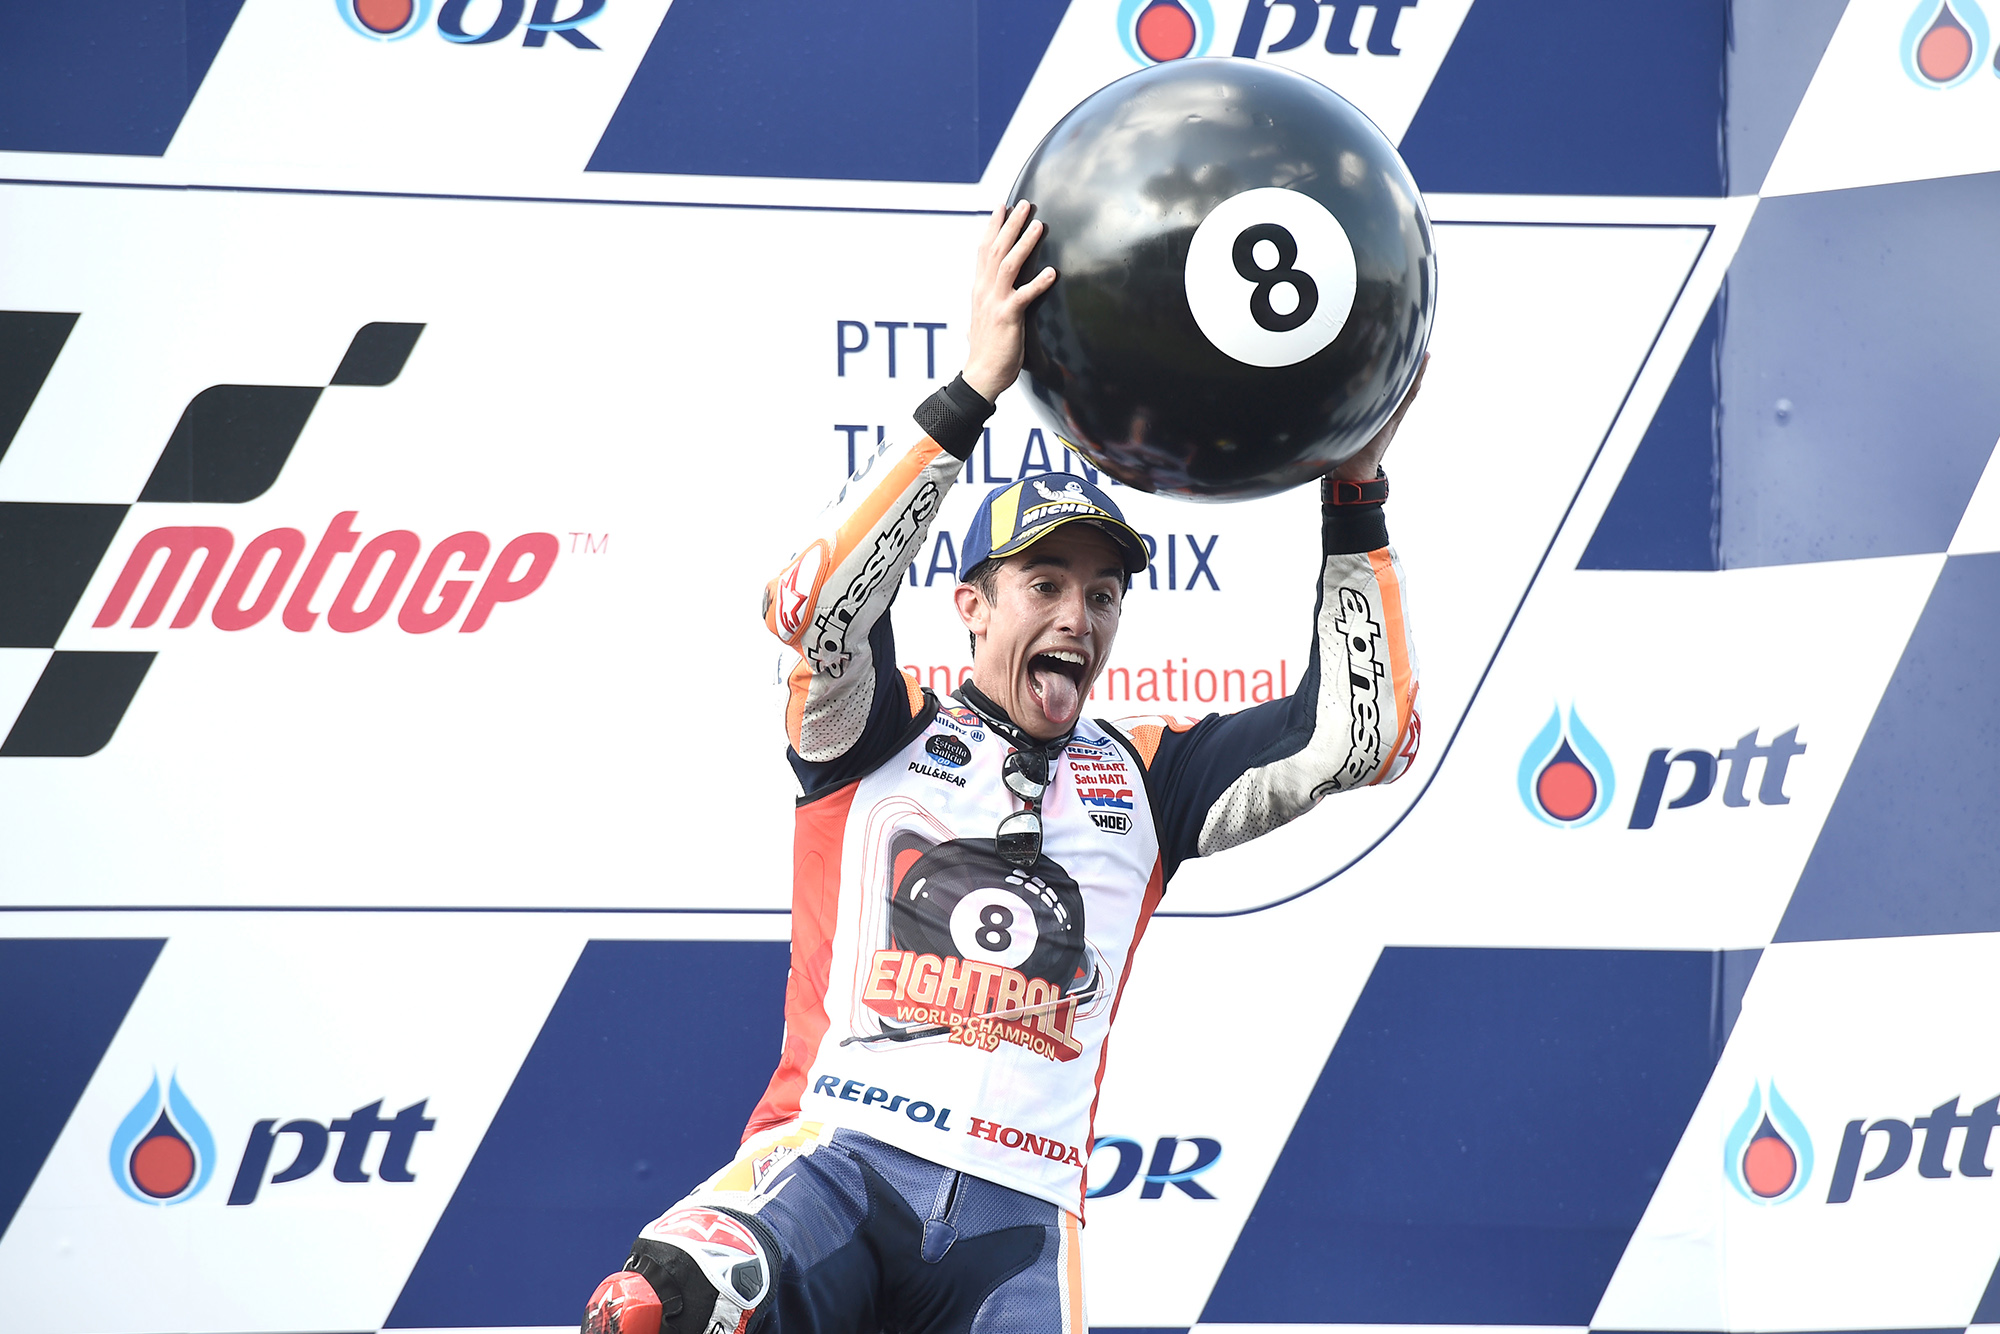 Marx Marquez on the podium with an 8 ball at the 2019 Thailand MotoGP race, after winning his sixth MotoGP title